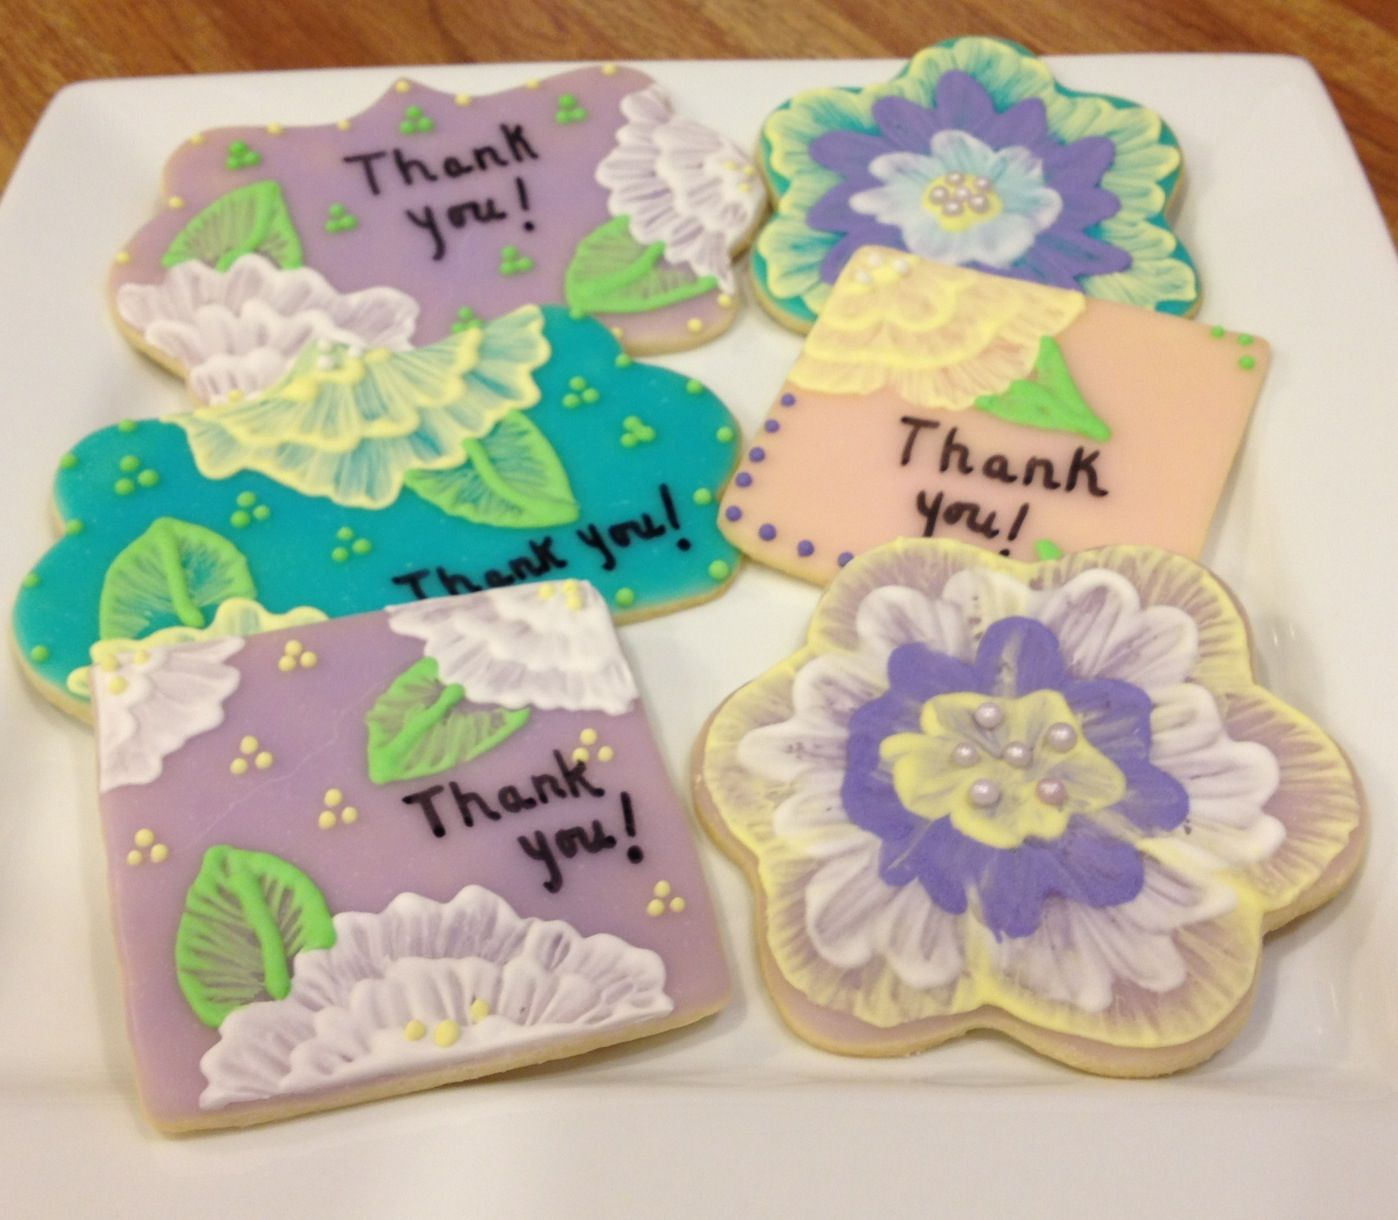 Pin by Danielle Shasteen on Danielle's Decorated Sugar Cookies | Pint ...